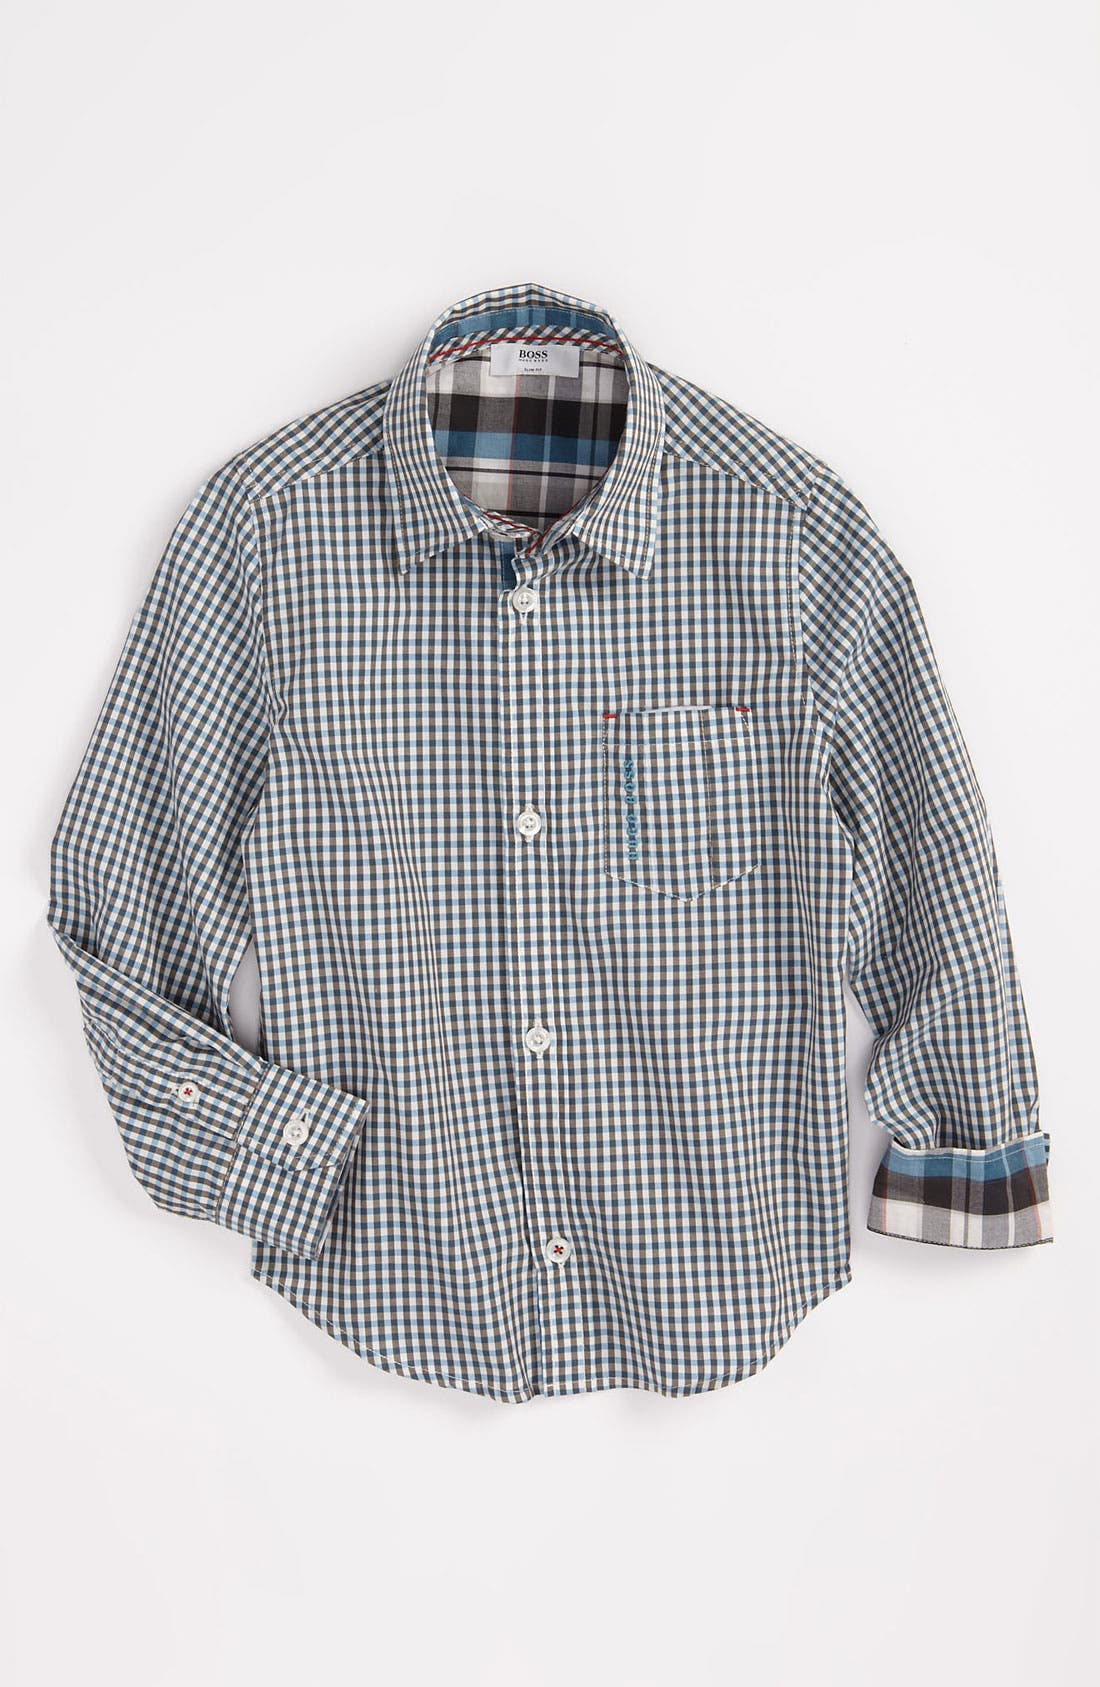 Main Image - BOSS Kidswear Check Print Poplin Shirt (Big Boys)